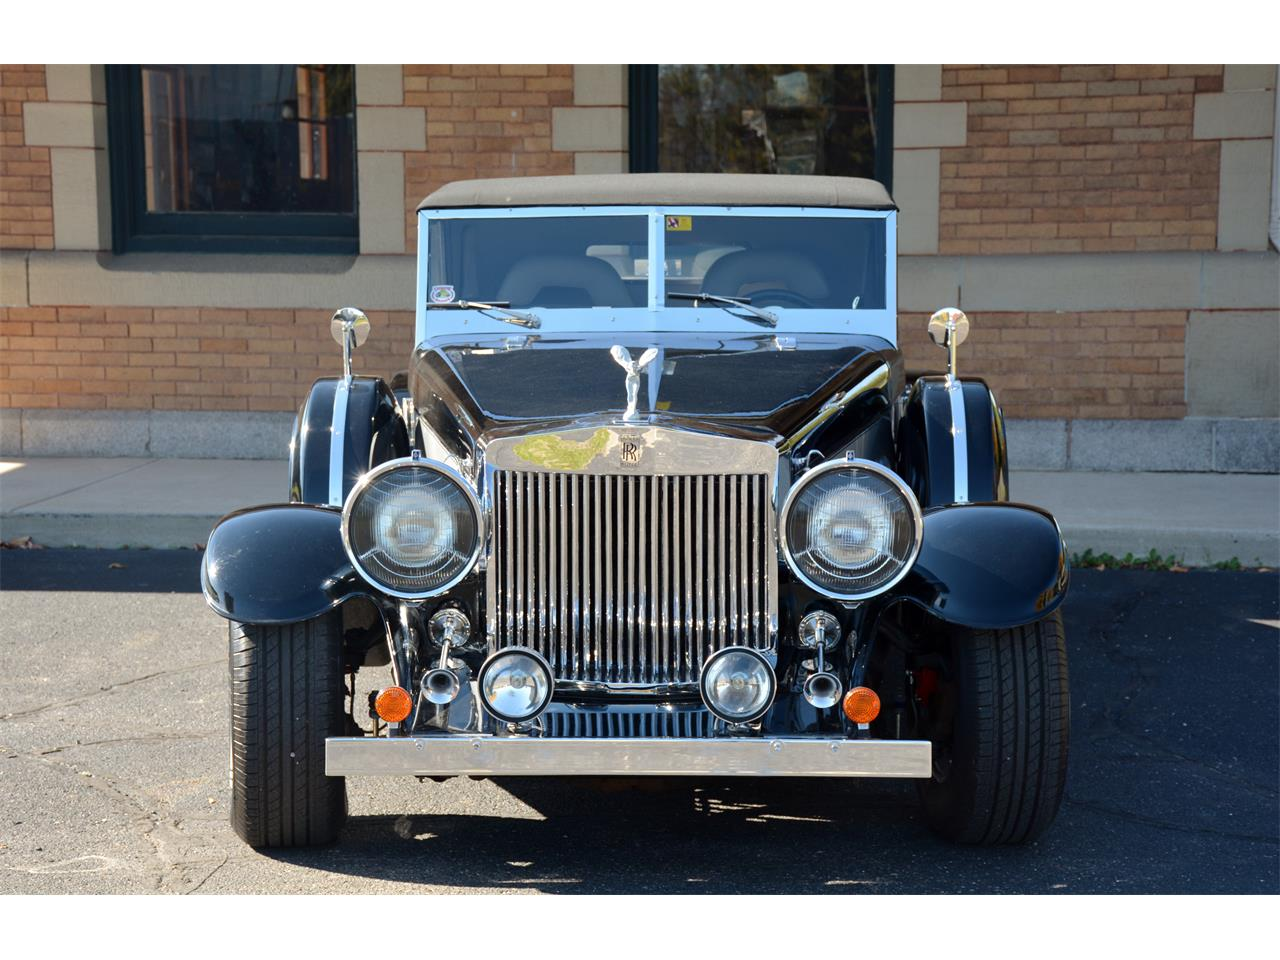 1931 Rolls-Royce Phantom II for sale in White Pigeon, MI – photo 3